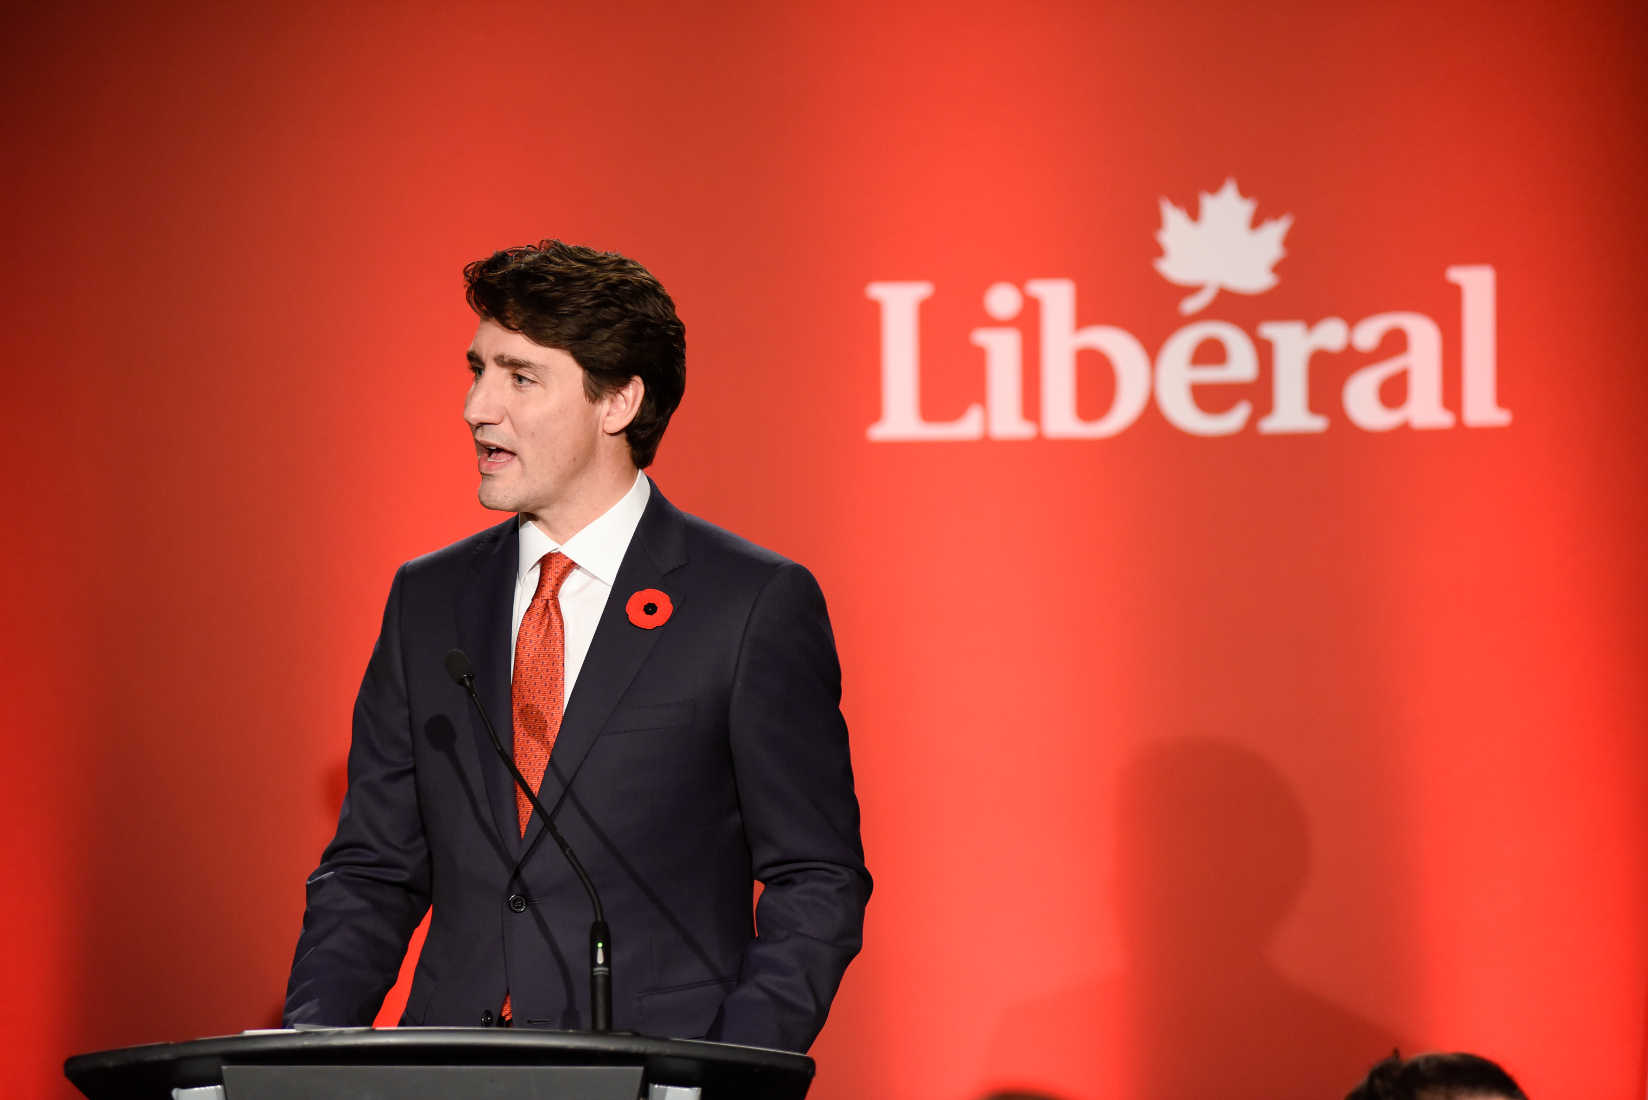 Trudeau: Shooter Acquired Guns Illegally, But Let's Ban 'Assault Weapons' Anyway